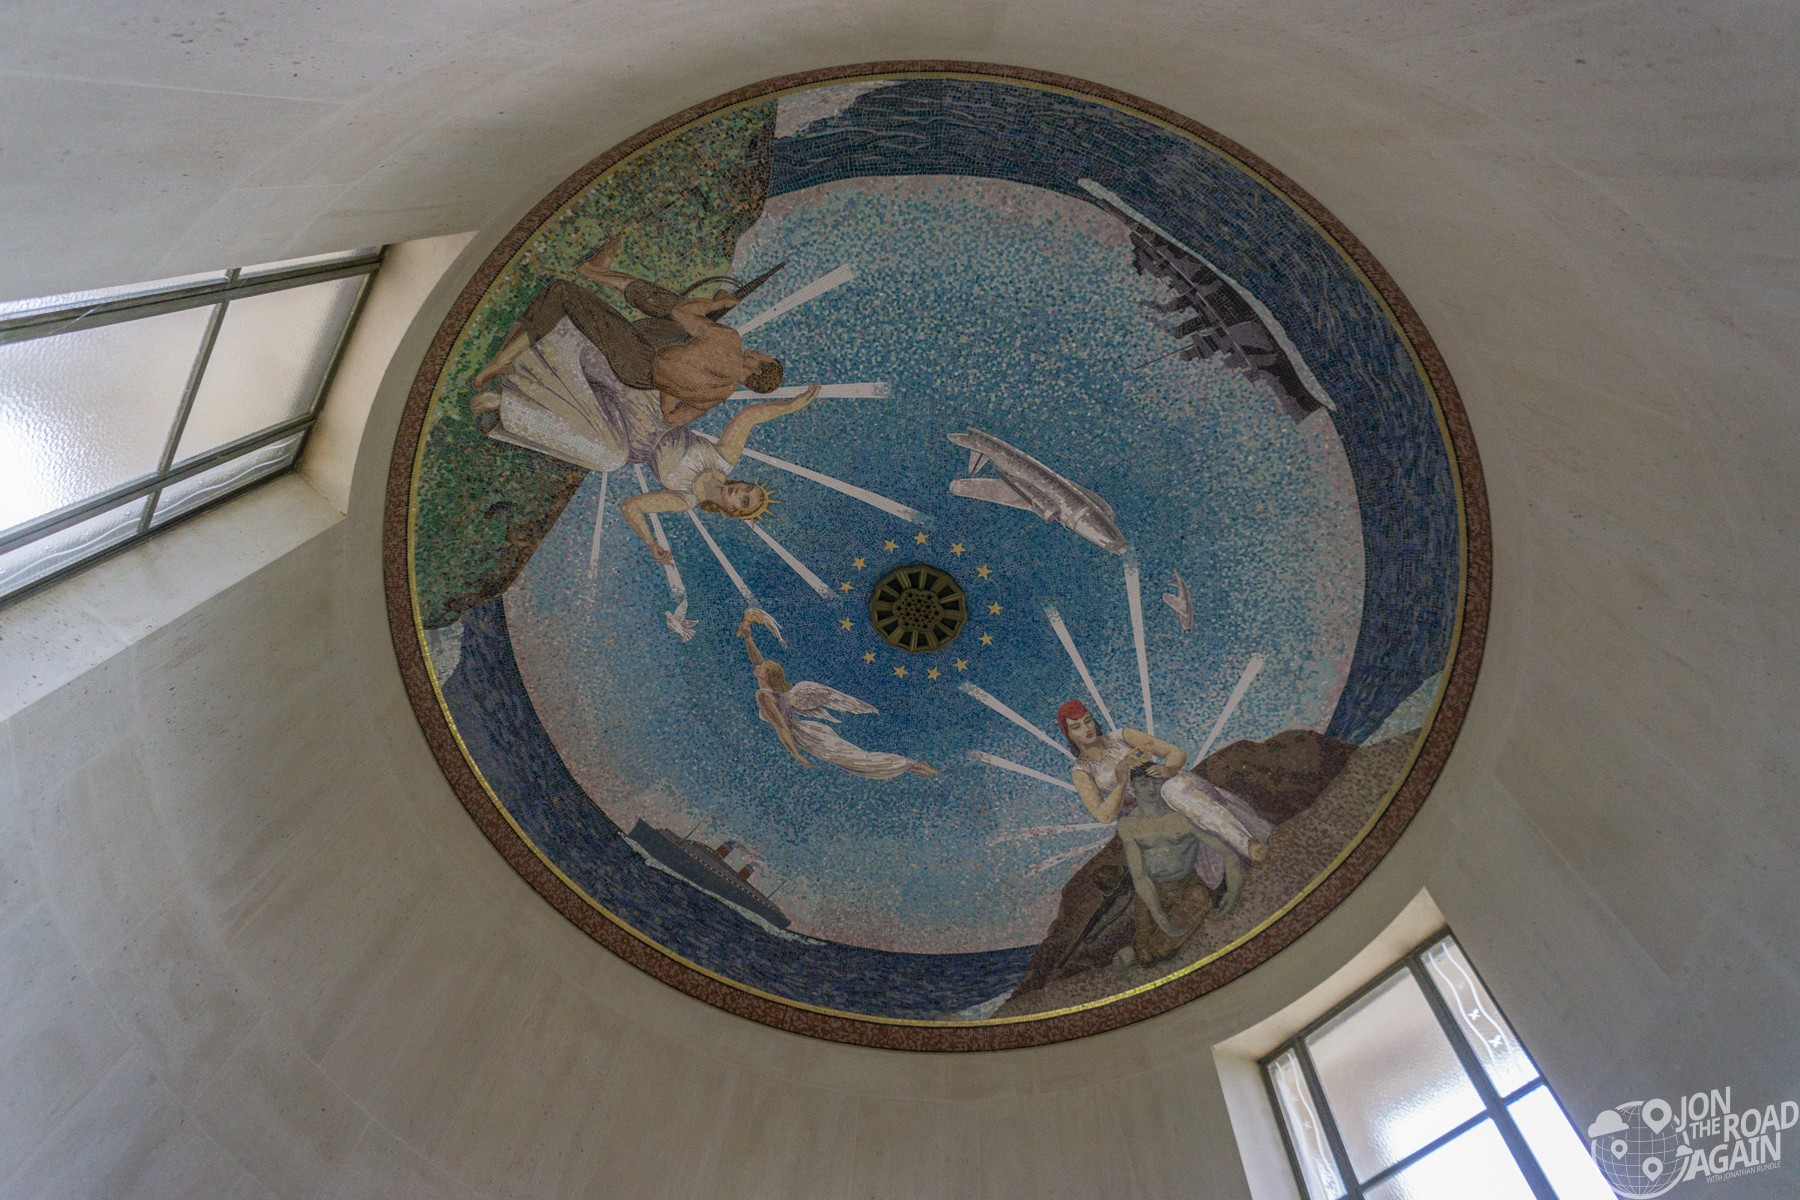 Chapel ceiling at Normandy American Cemetery